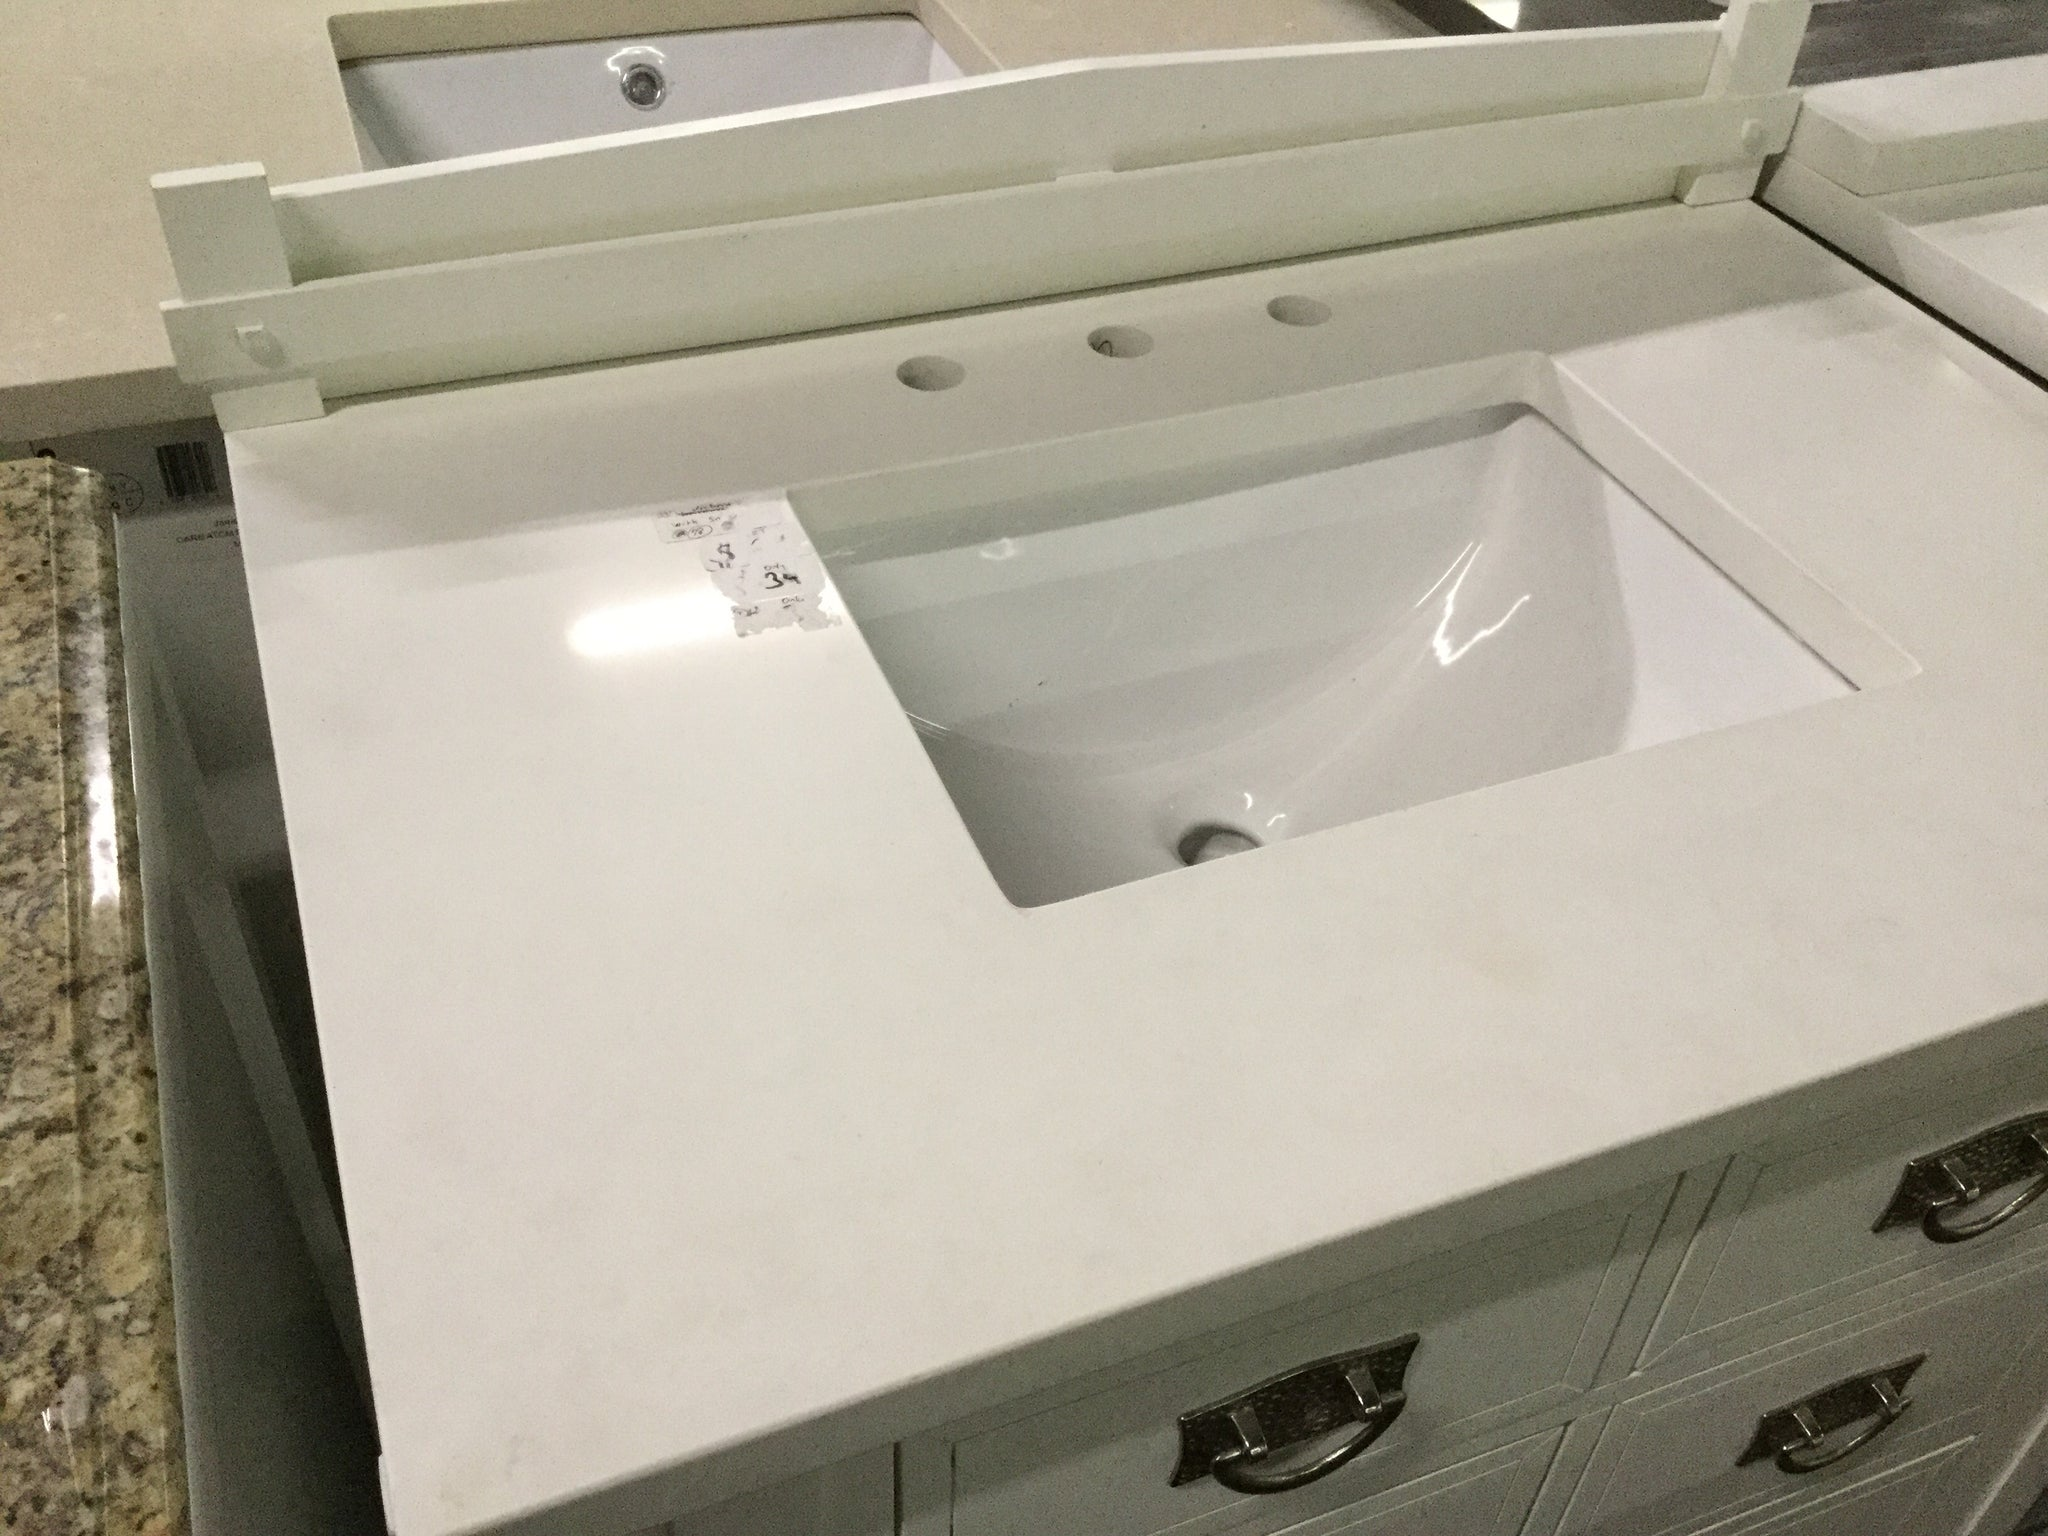 James Martin 33in White Quartz Top Only Toros Outlet Farmers Branch